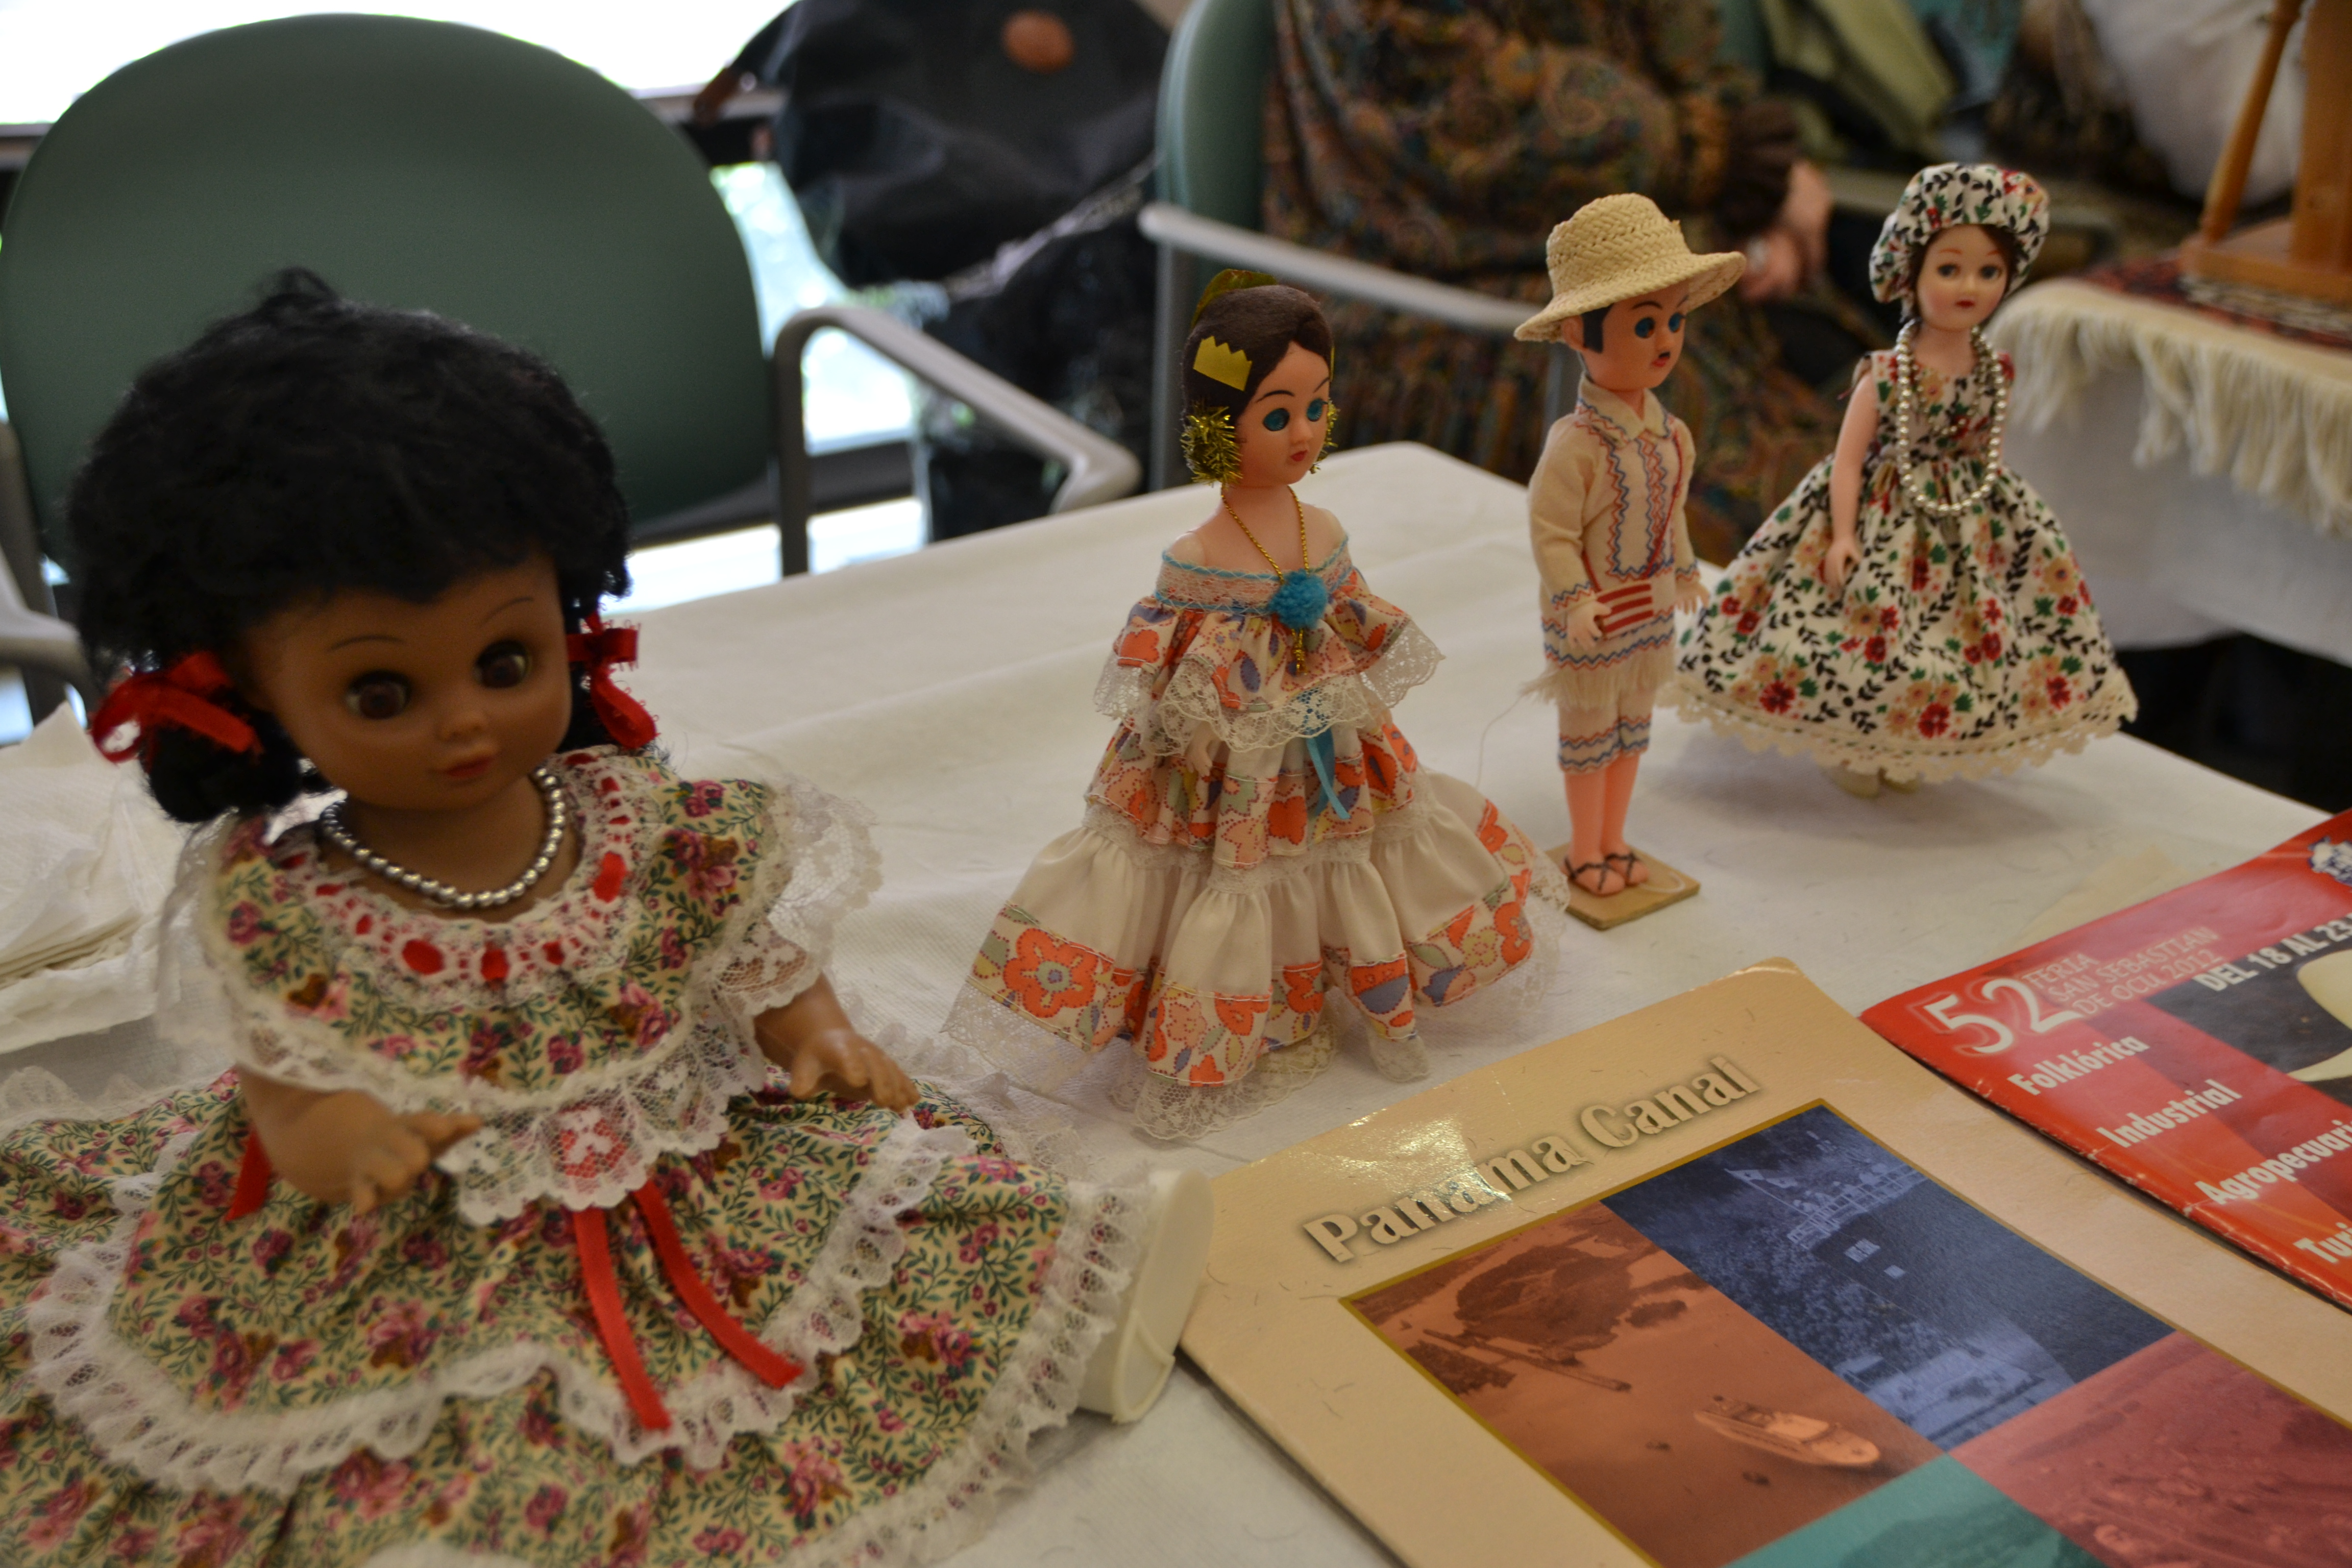 Children's dolls from Panama.